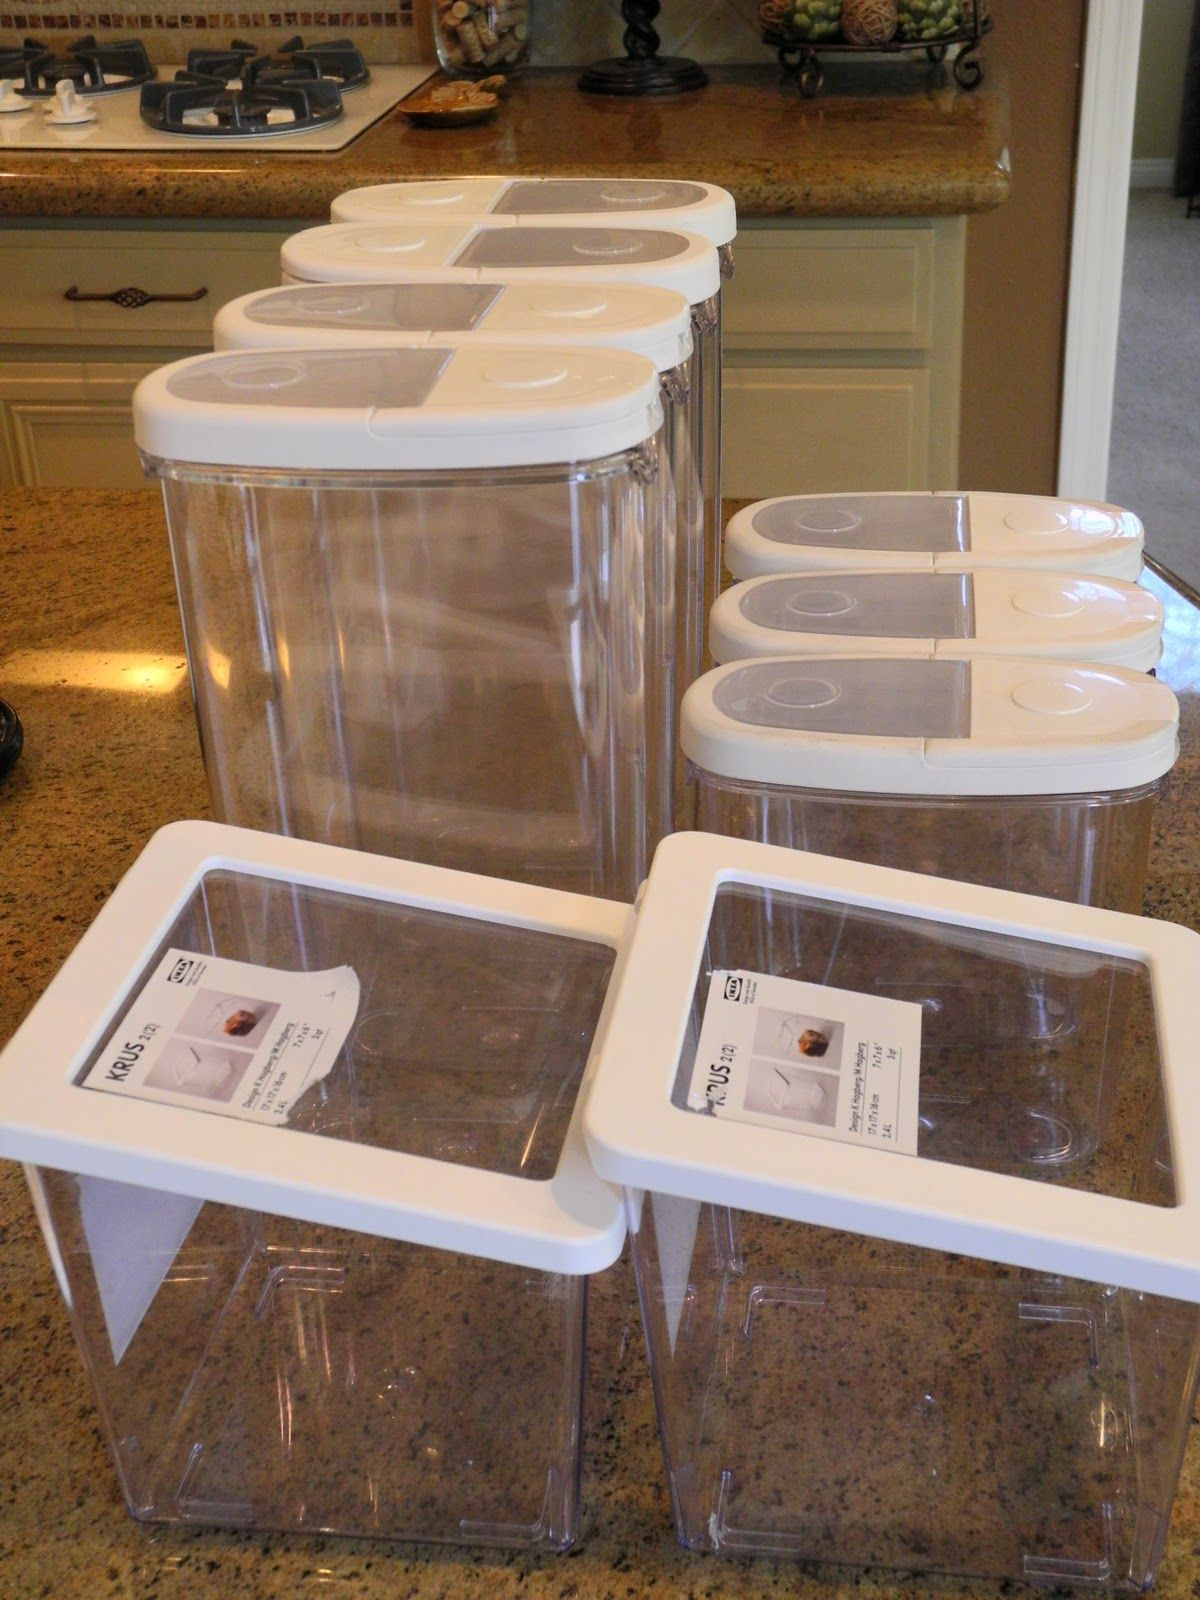 kitchen drawer organizer ikea cabinets black bins for organizing pantry bpa free containers